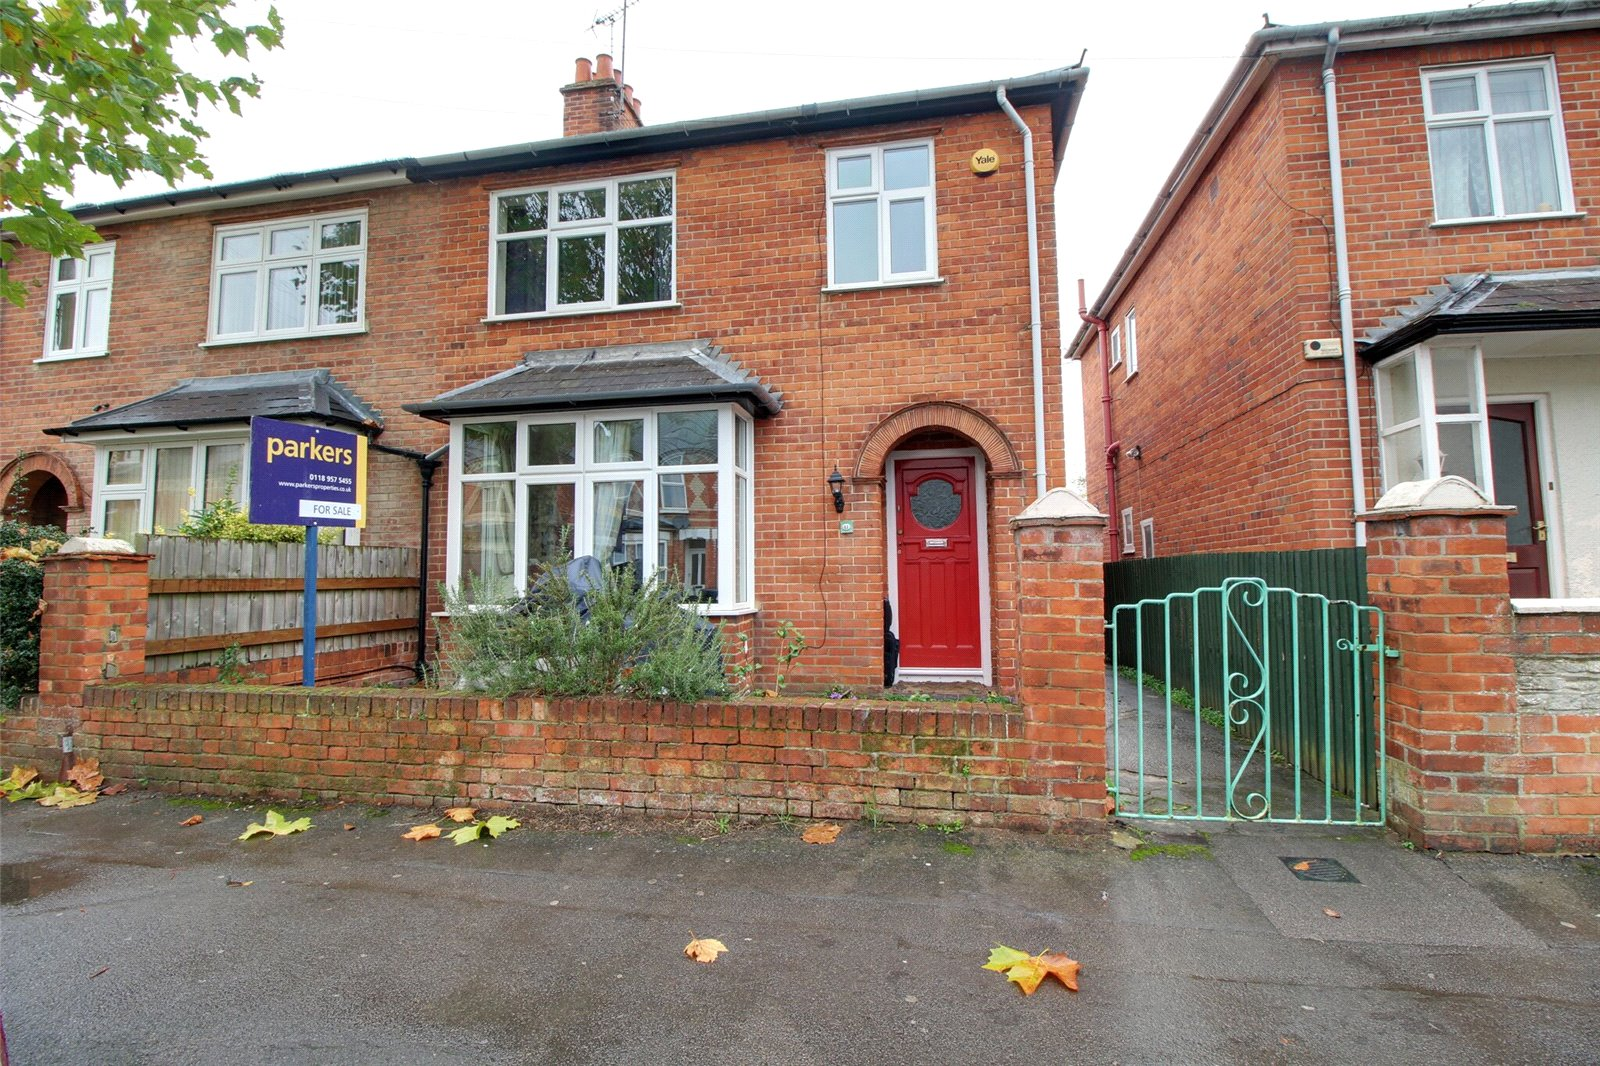 Parkers Reading 3 Bedroom House For Sale In Wantage Road